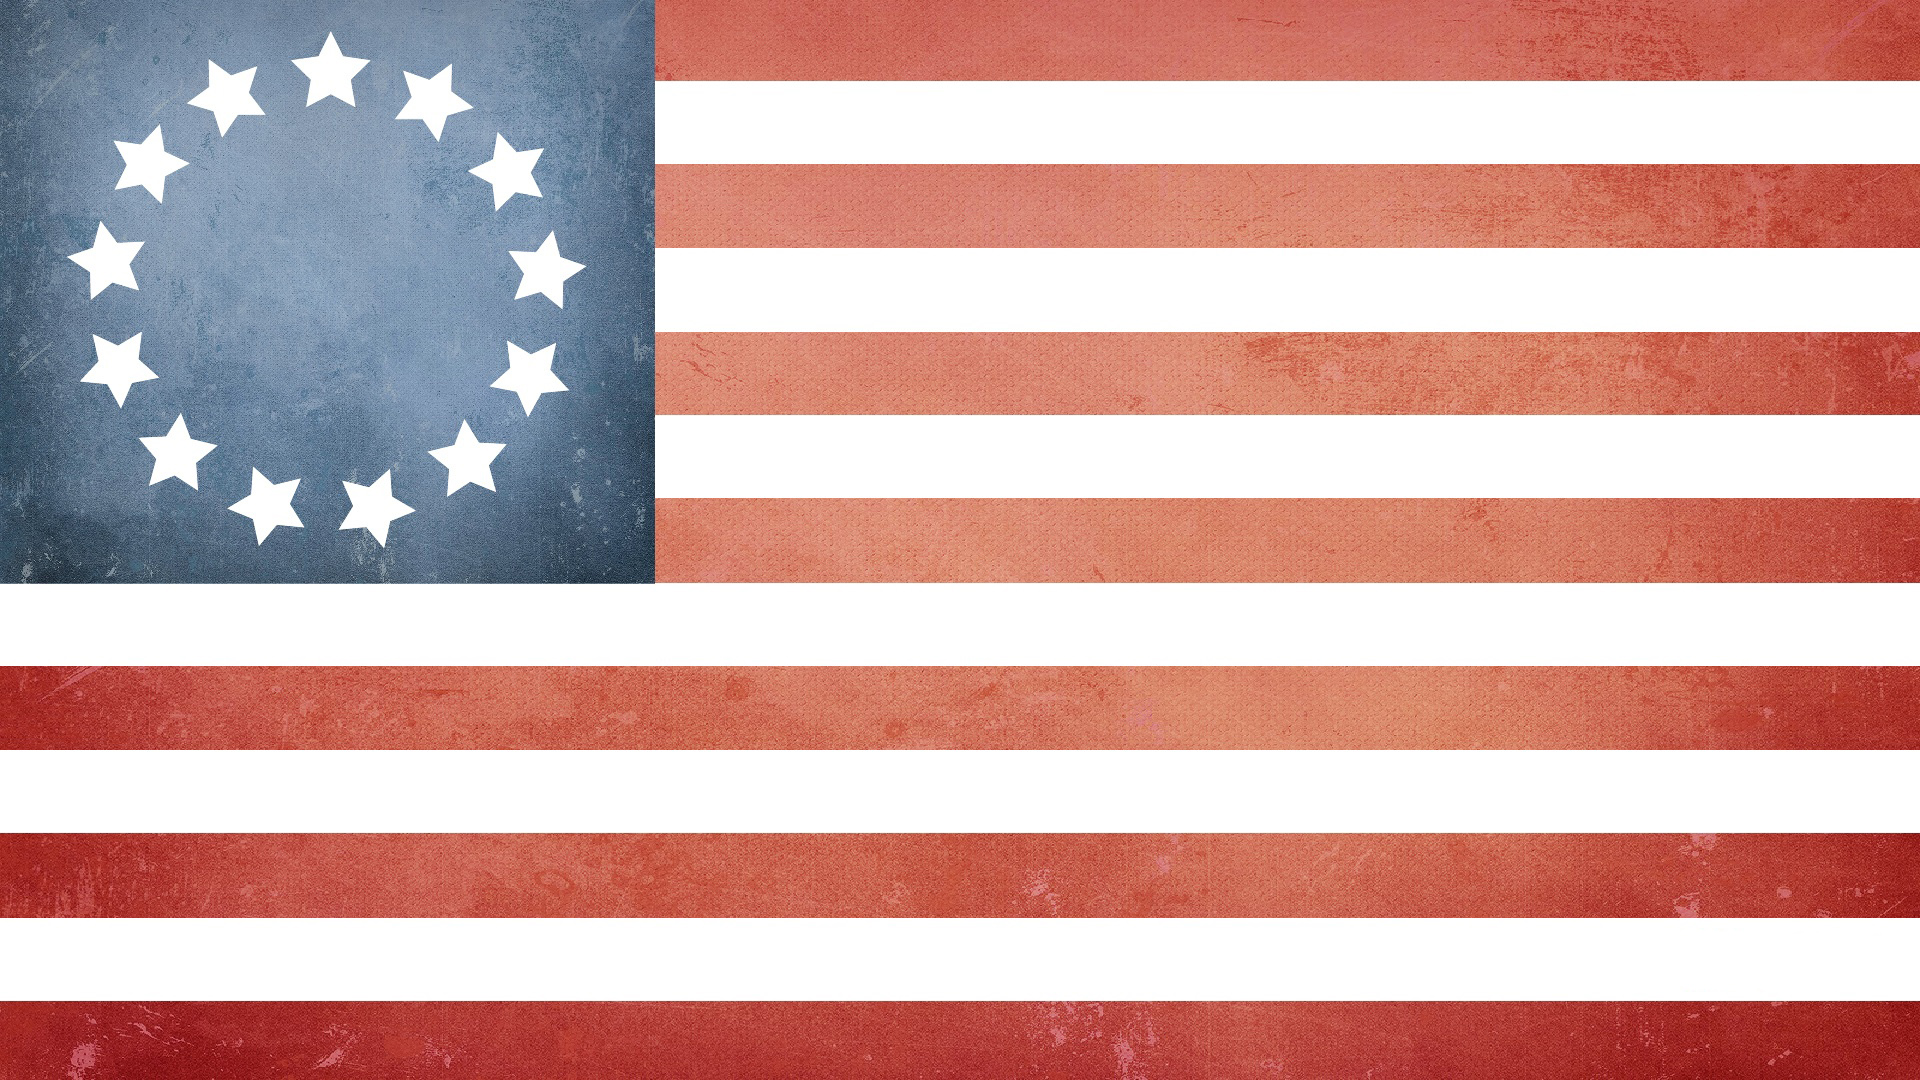 13 Star US Flag 376.95 Kb